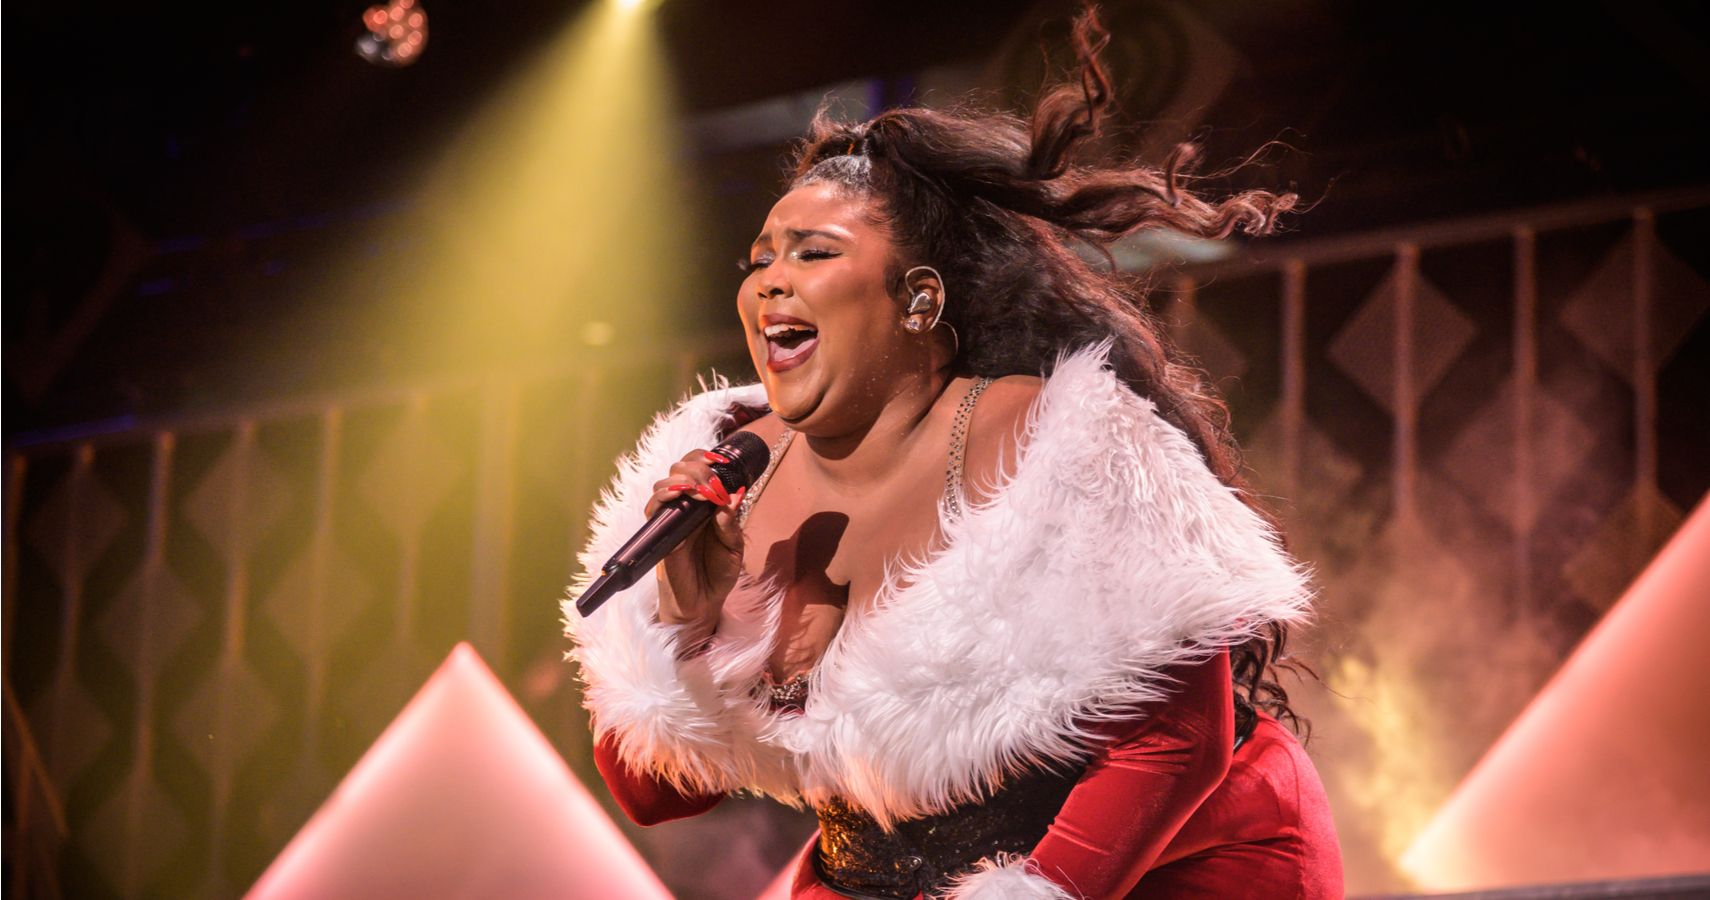 A Brand New Closet: Lizzo Surprises Her Mom With An Entirely New Wardrobe On Her Birthday